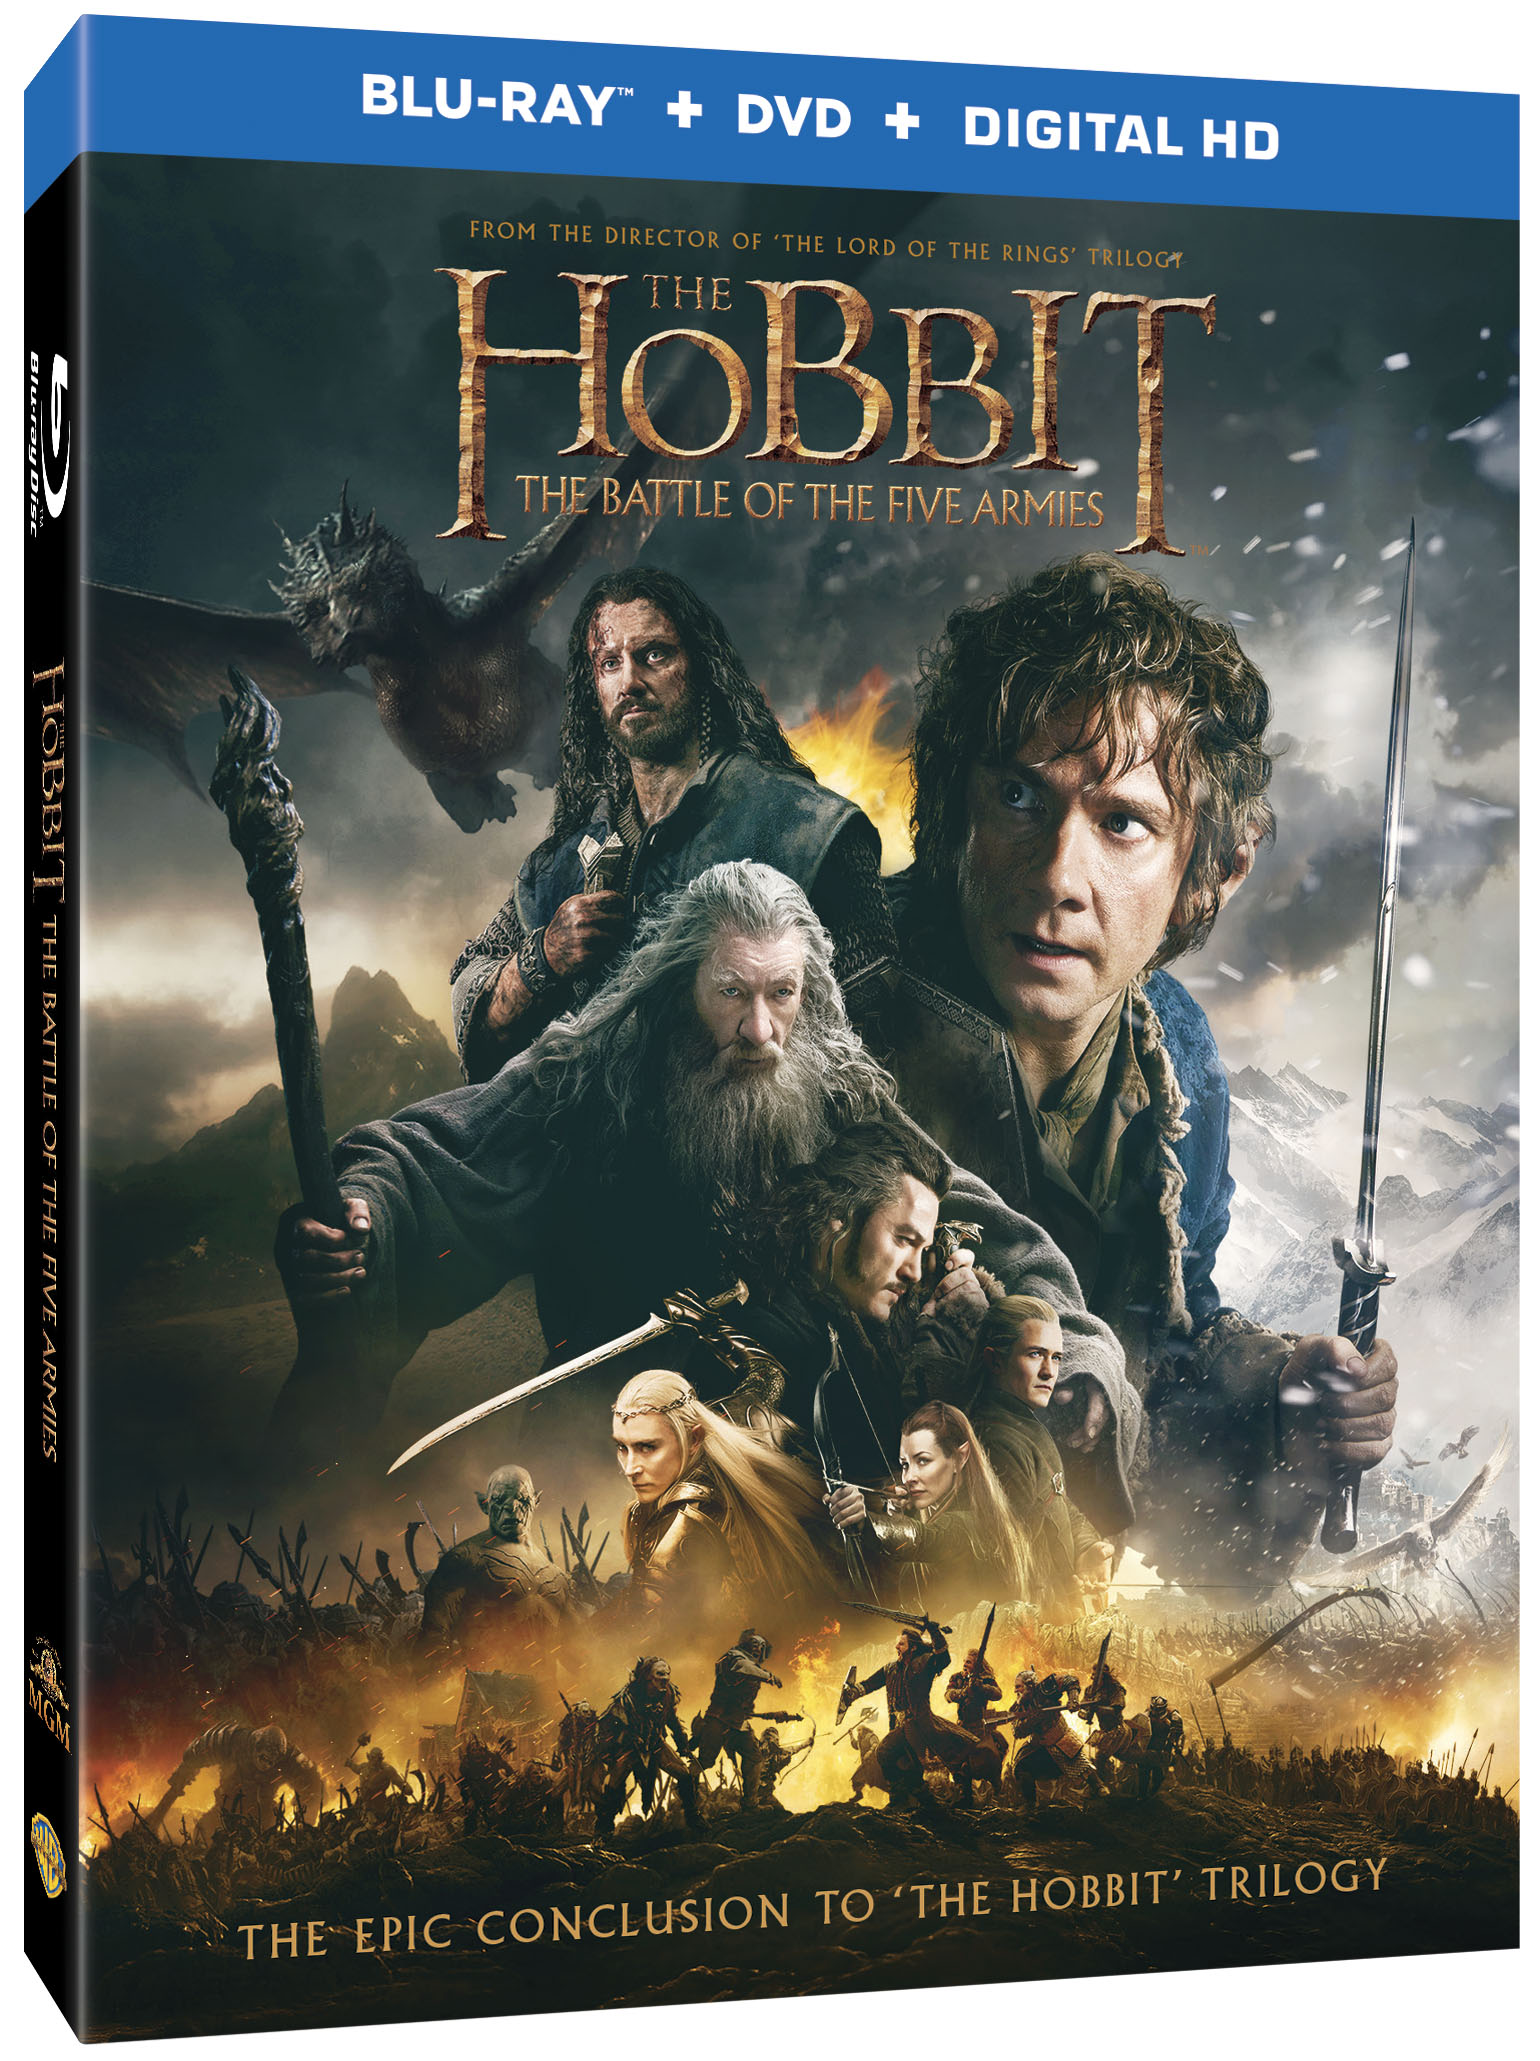 The Hobbit: The Battle of the Five Armies – Blu-ray 3D Combo